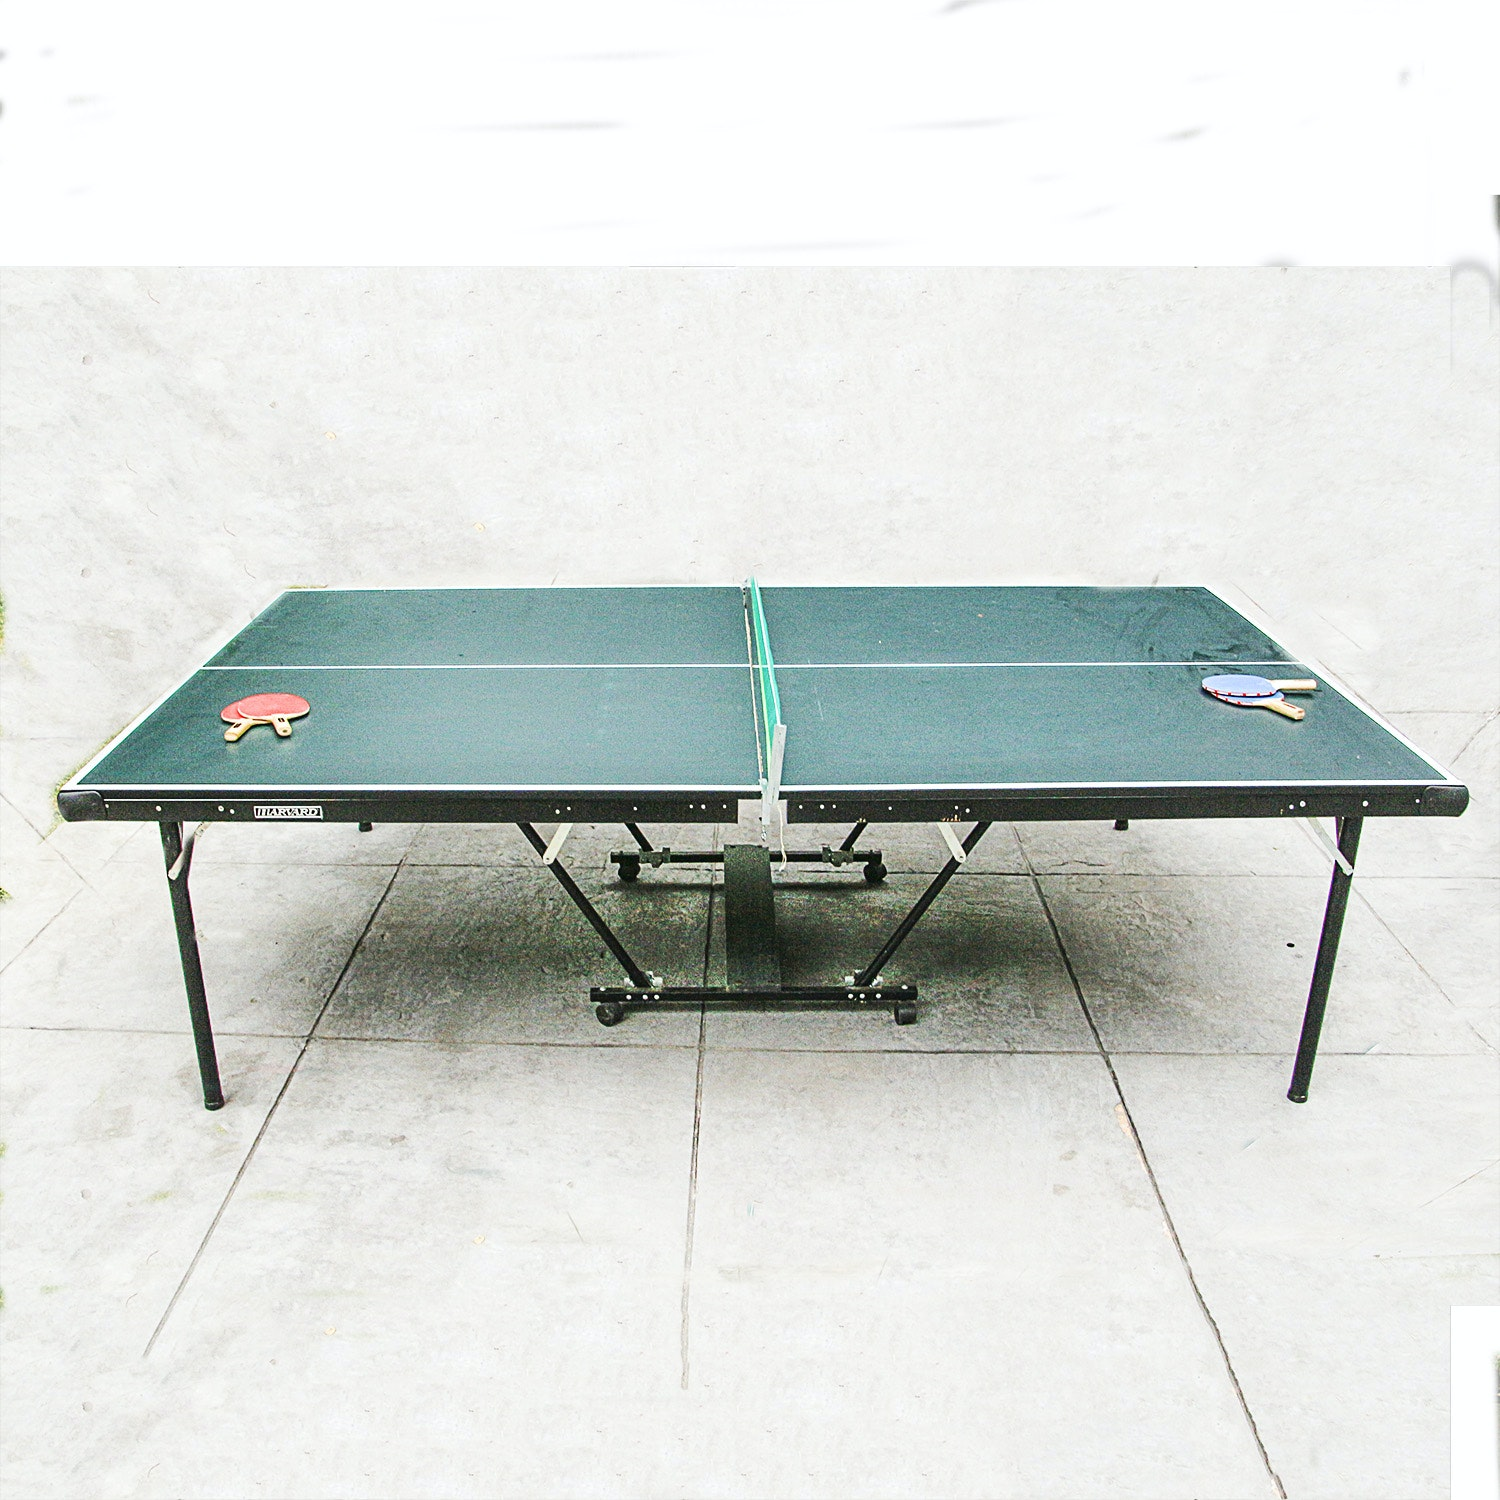 Harvard Portable Ping Pong Table And Accessories ...